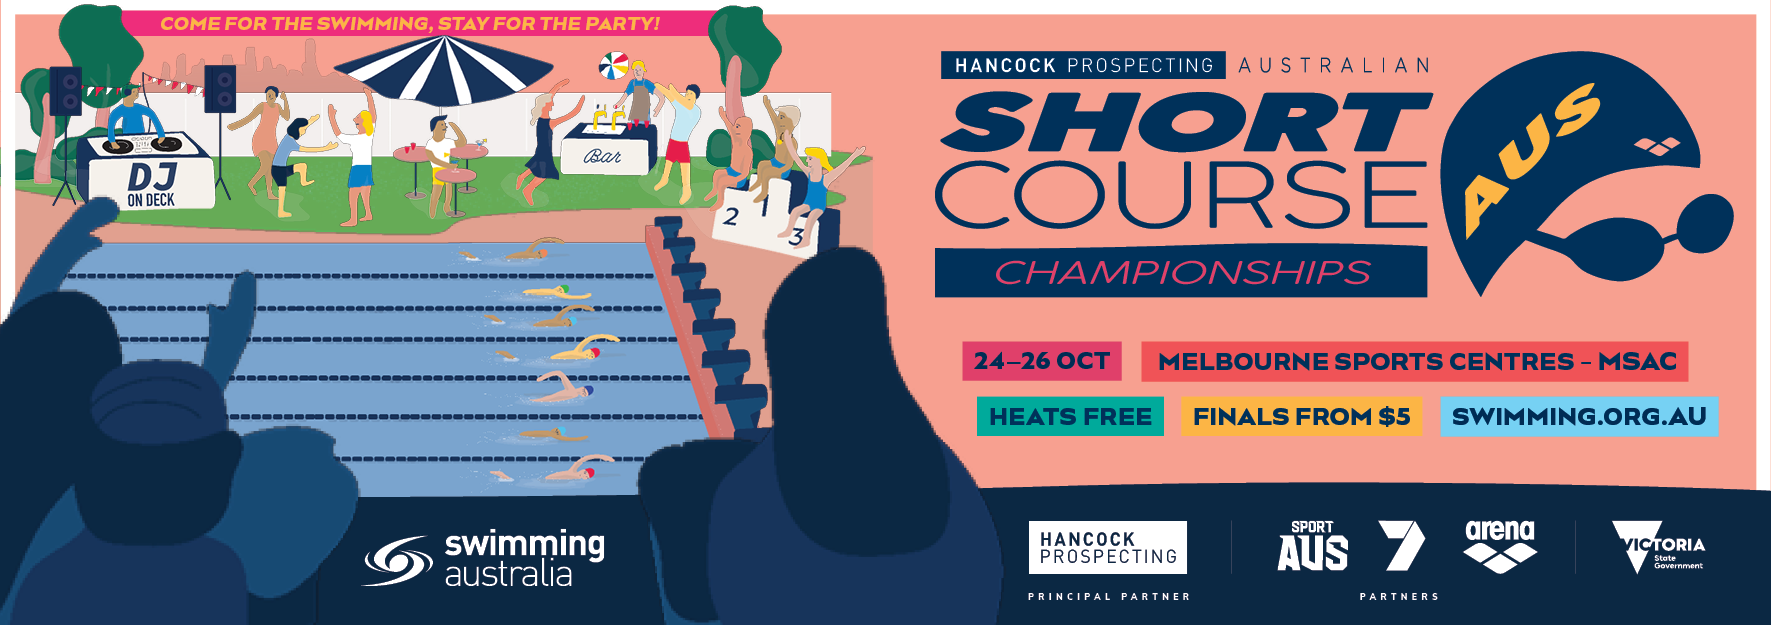 Tickets for 2019 Hancock Prospecting Australian Short Course Swimming Championships in Albert Park from Melbourne Sports Centre